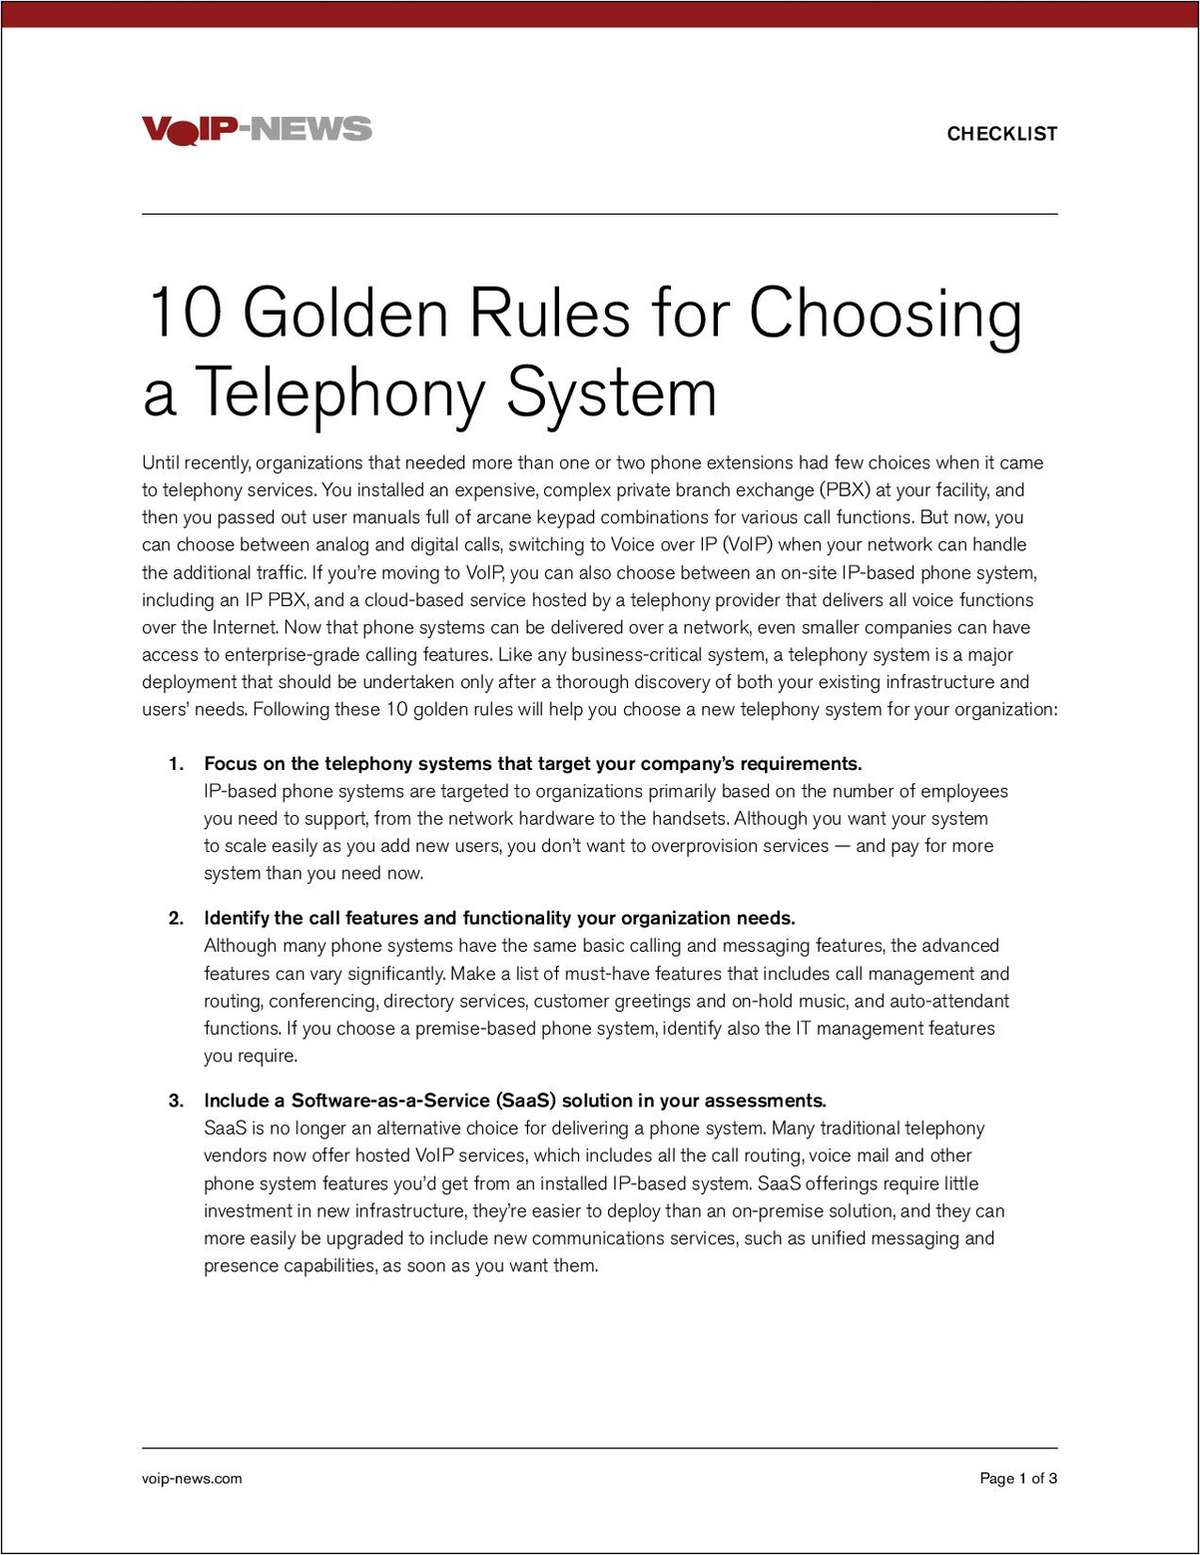 10 Golden Rules for Choosing a Phone System